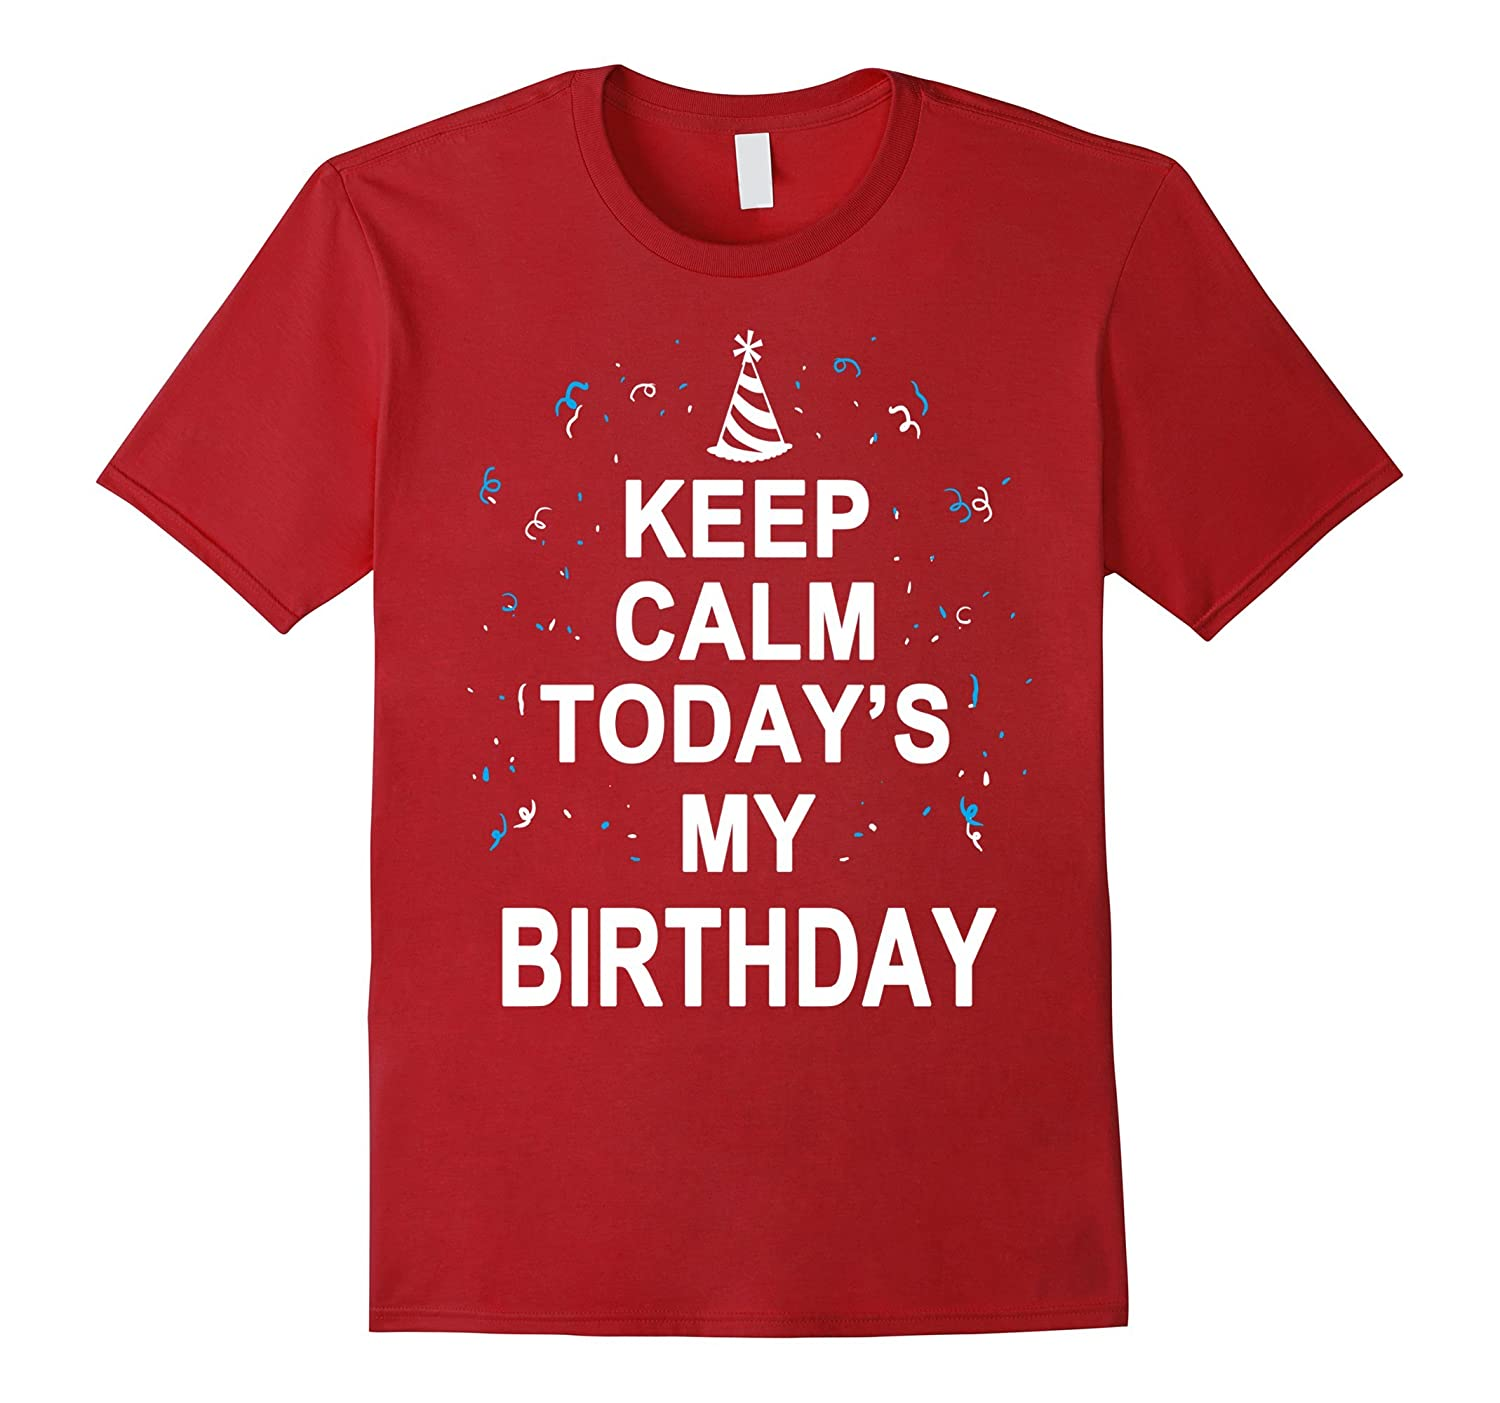 Keep Calm Todays My Birthday T Shirt Adult Boy Girl Gift RT